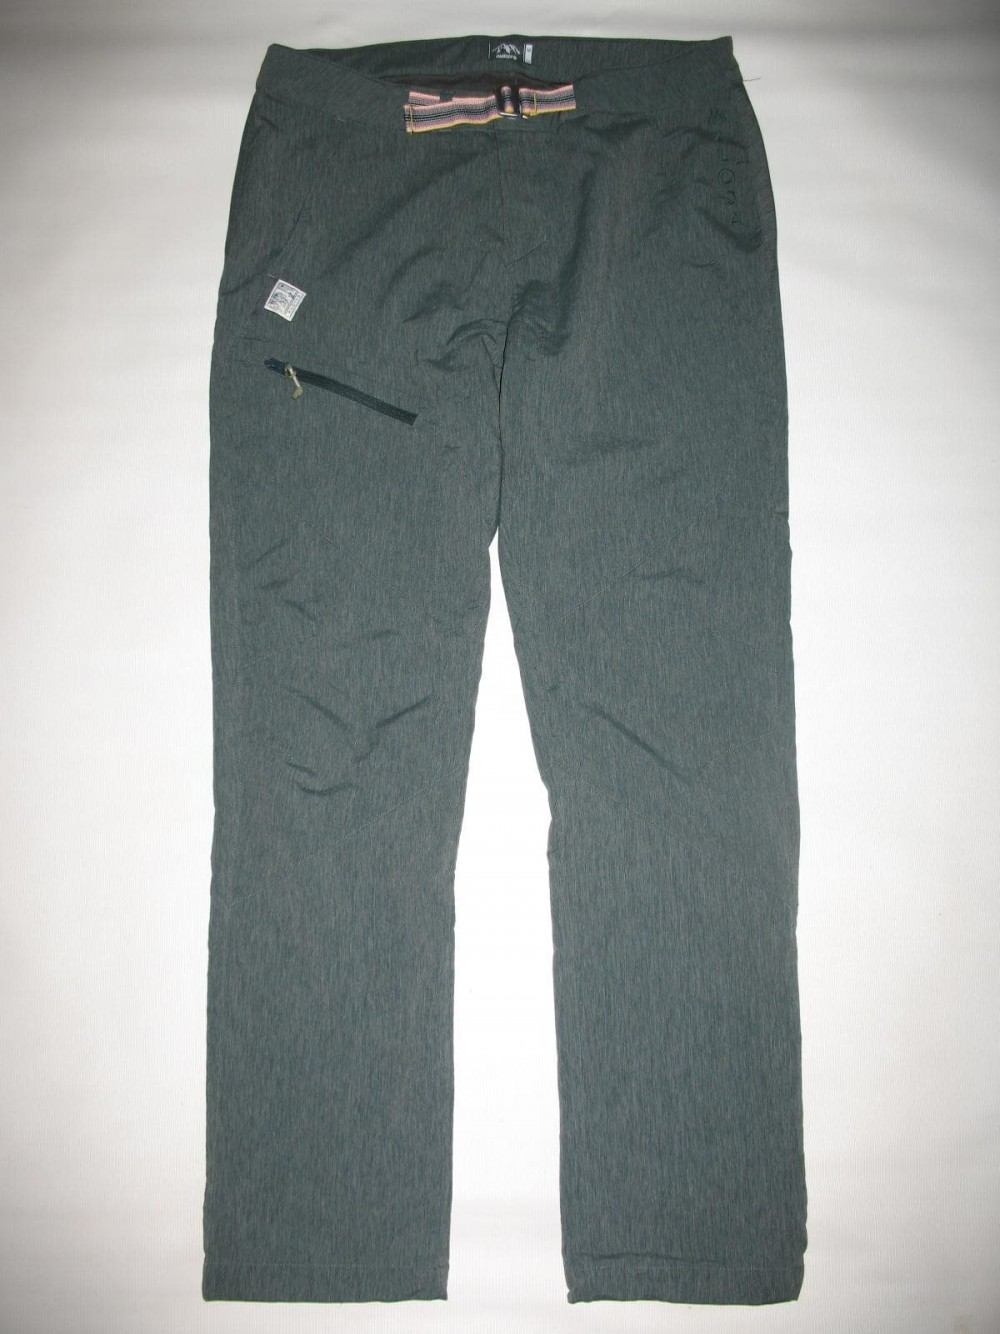 Штаны MALOJA CuroM. outdoor pants (размер M) - 2